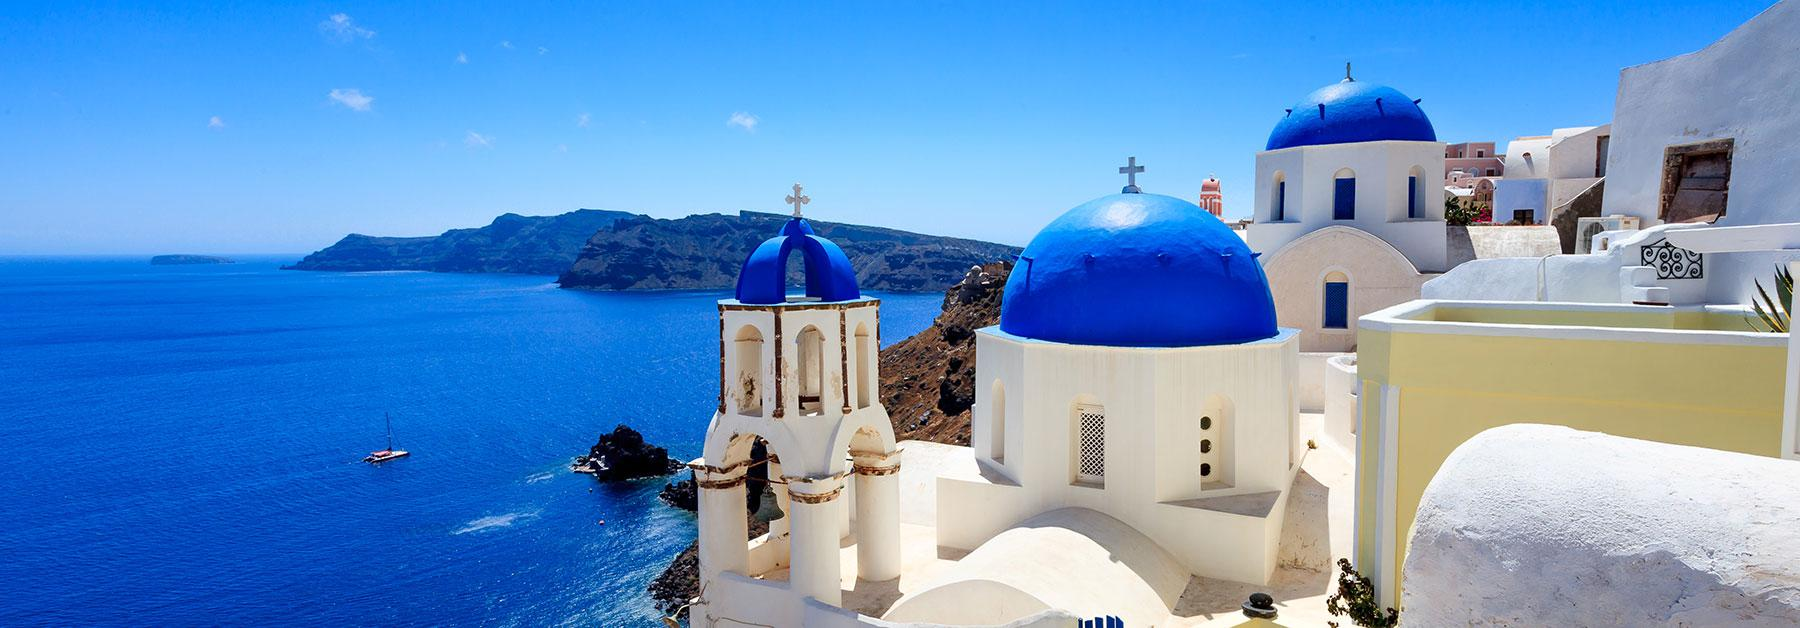 Greece Vacations with Airfare | Trip to Greece from go-today